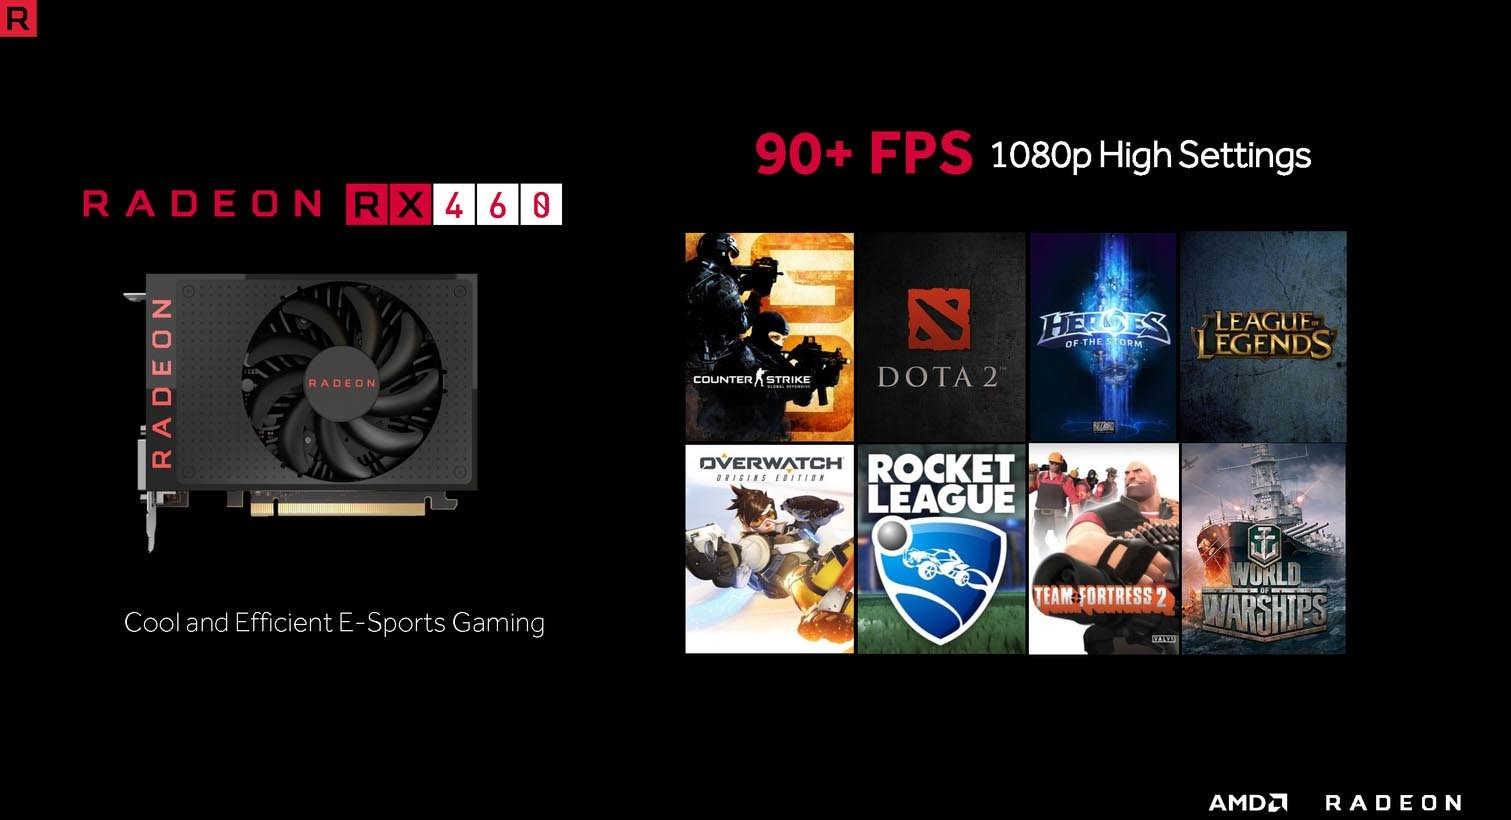 AMD Radeon RX 460 90+ FPS jeux video